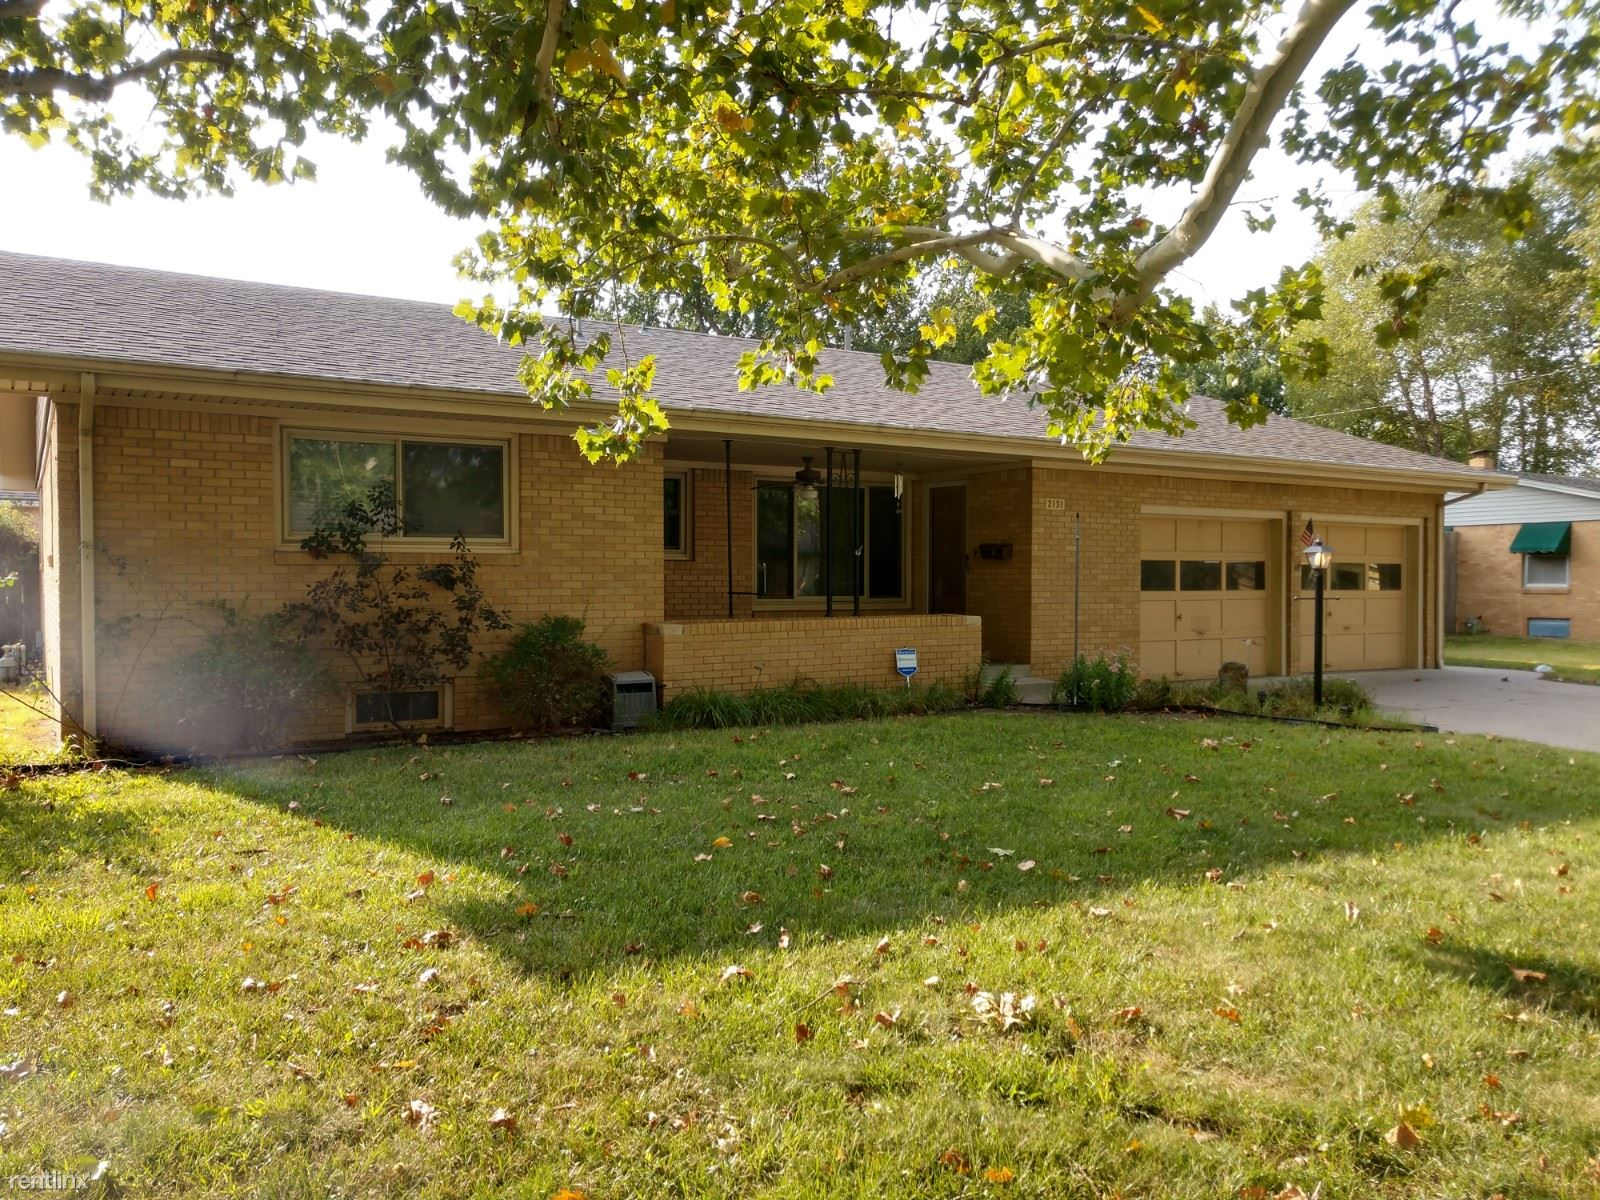 2131 S Chautauqua Ave, Wichita, KS - $1,300